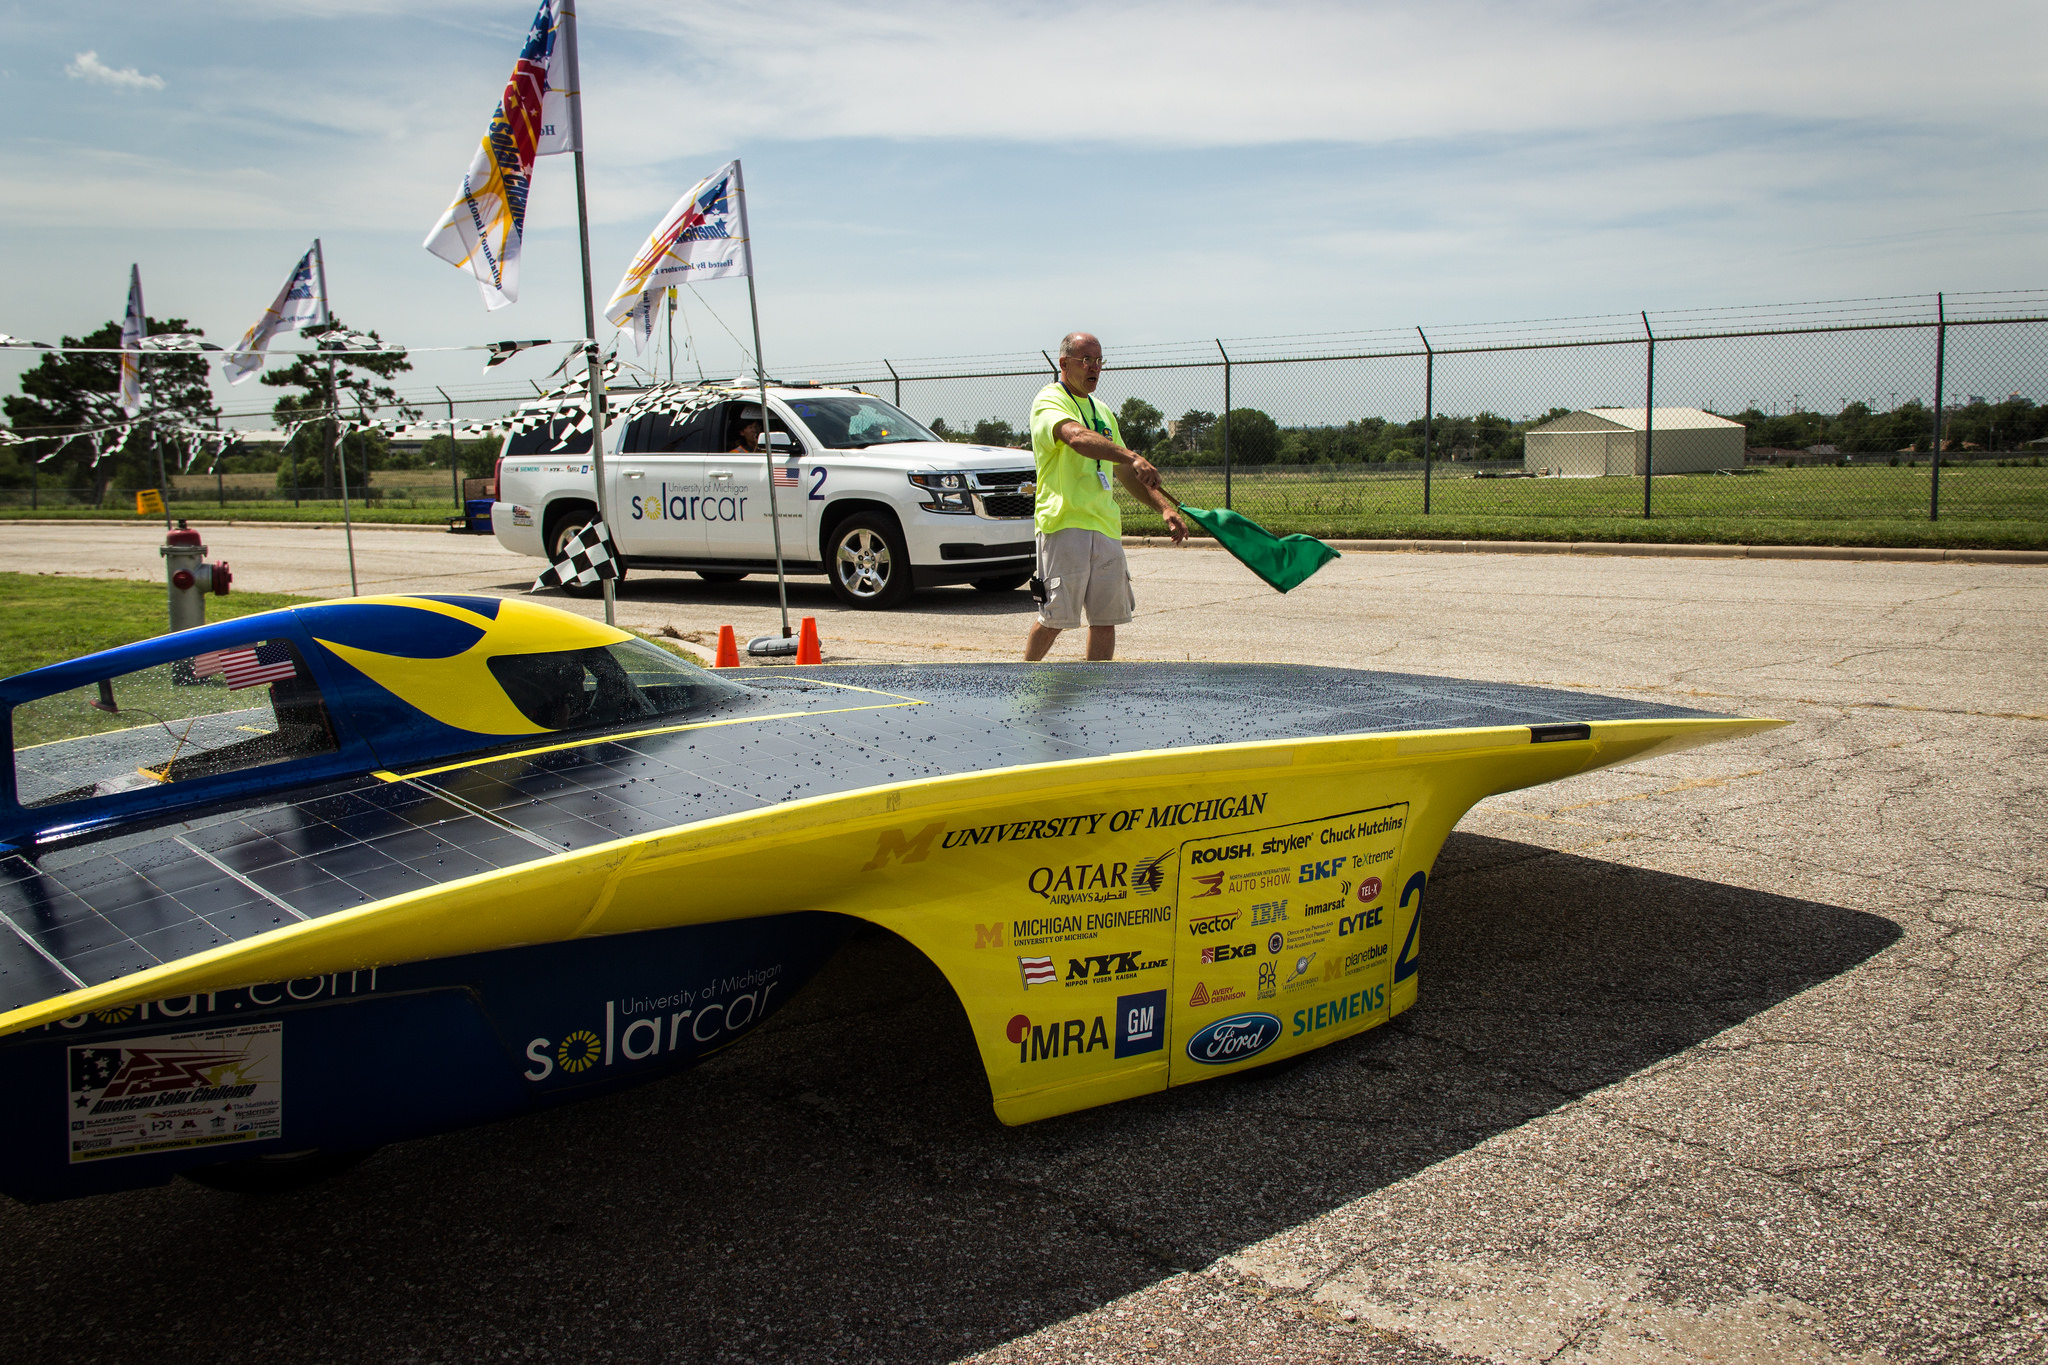 MLive | University of Michigan solar car wins fifth straight national title